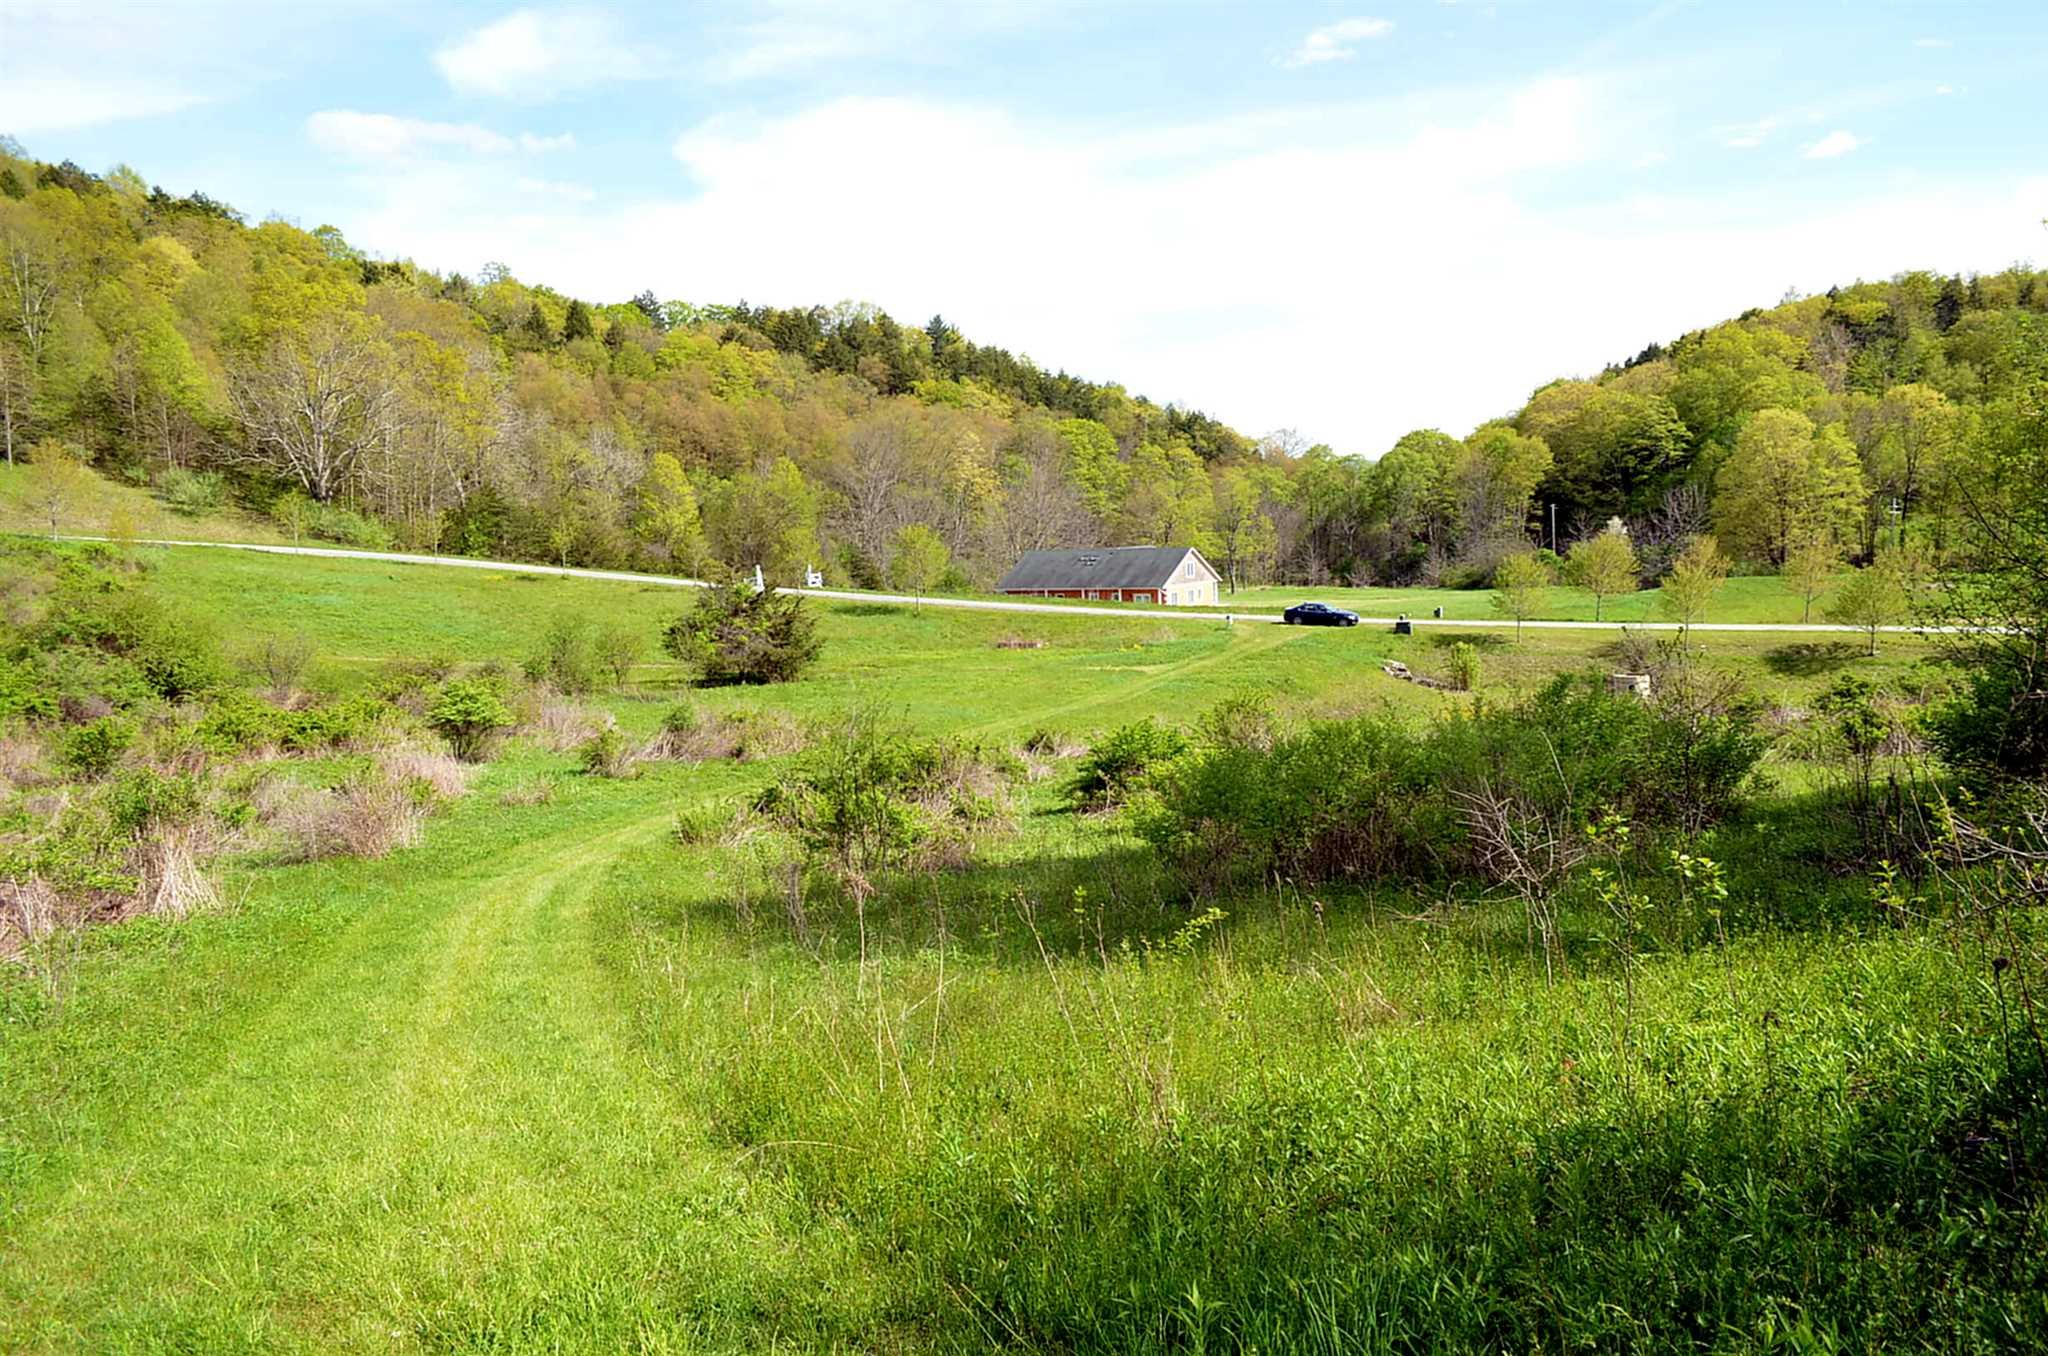 Land for Sale at 3 WESTERLY RIDGE LOT # Drive 3 WESTERLY RIDGE LOT # Drive Amenia, New York 12501 United States